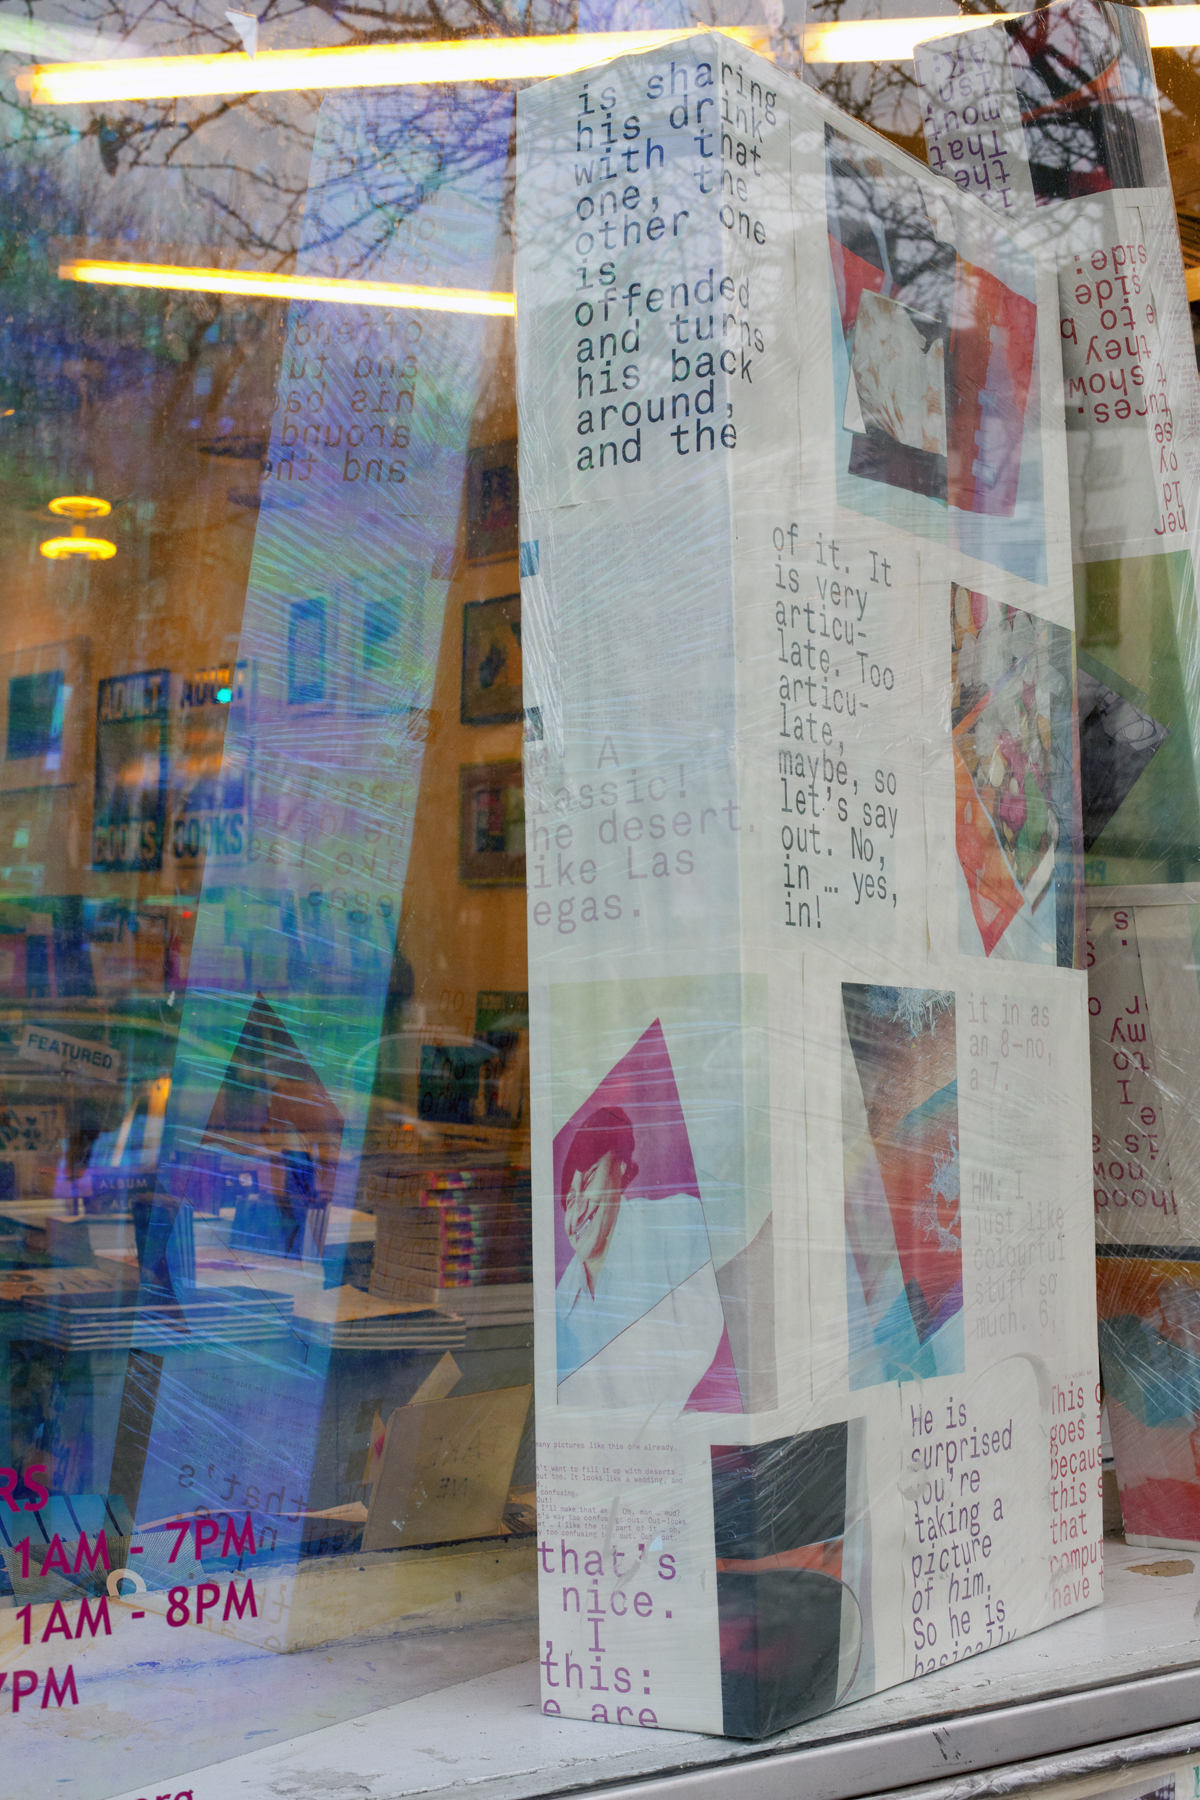 window installation at Printed Matter in New York